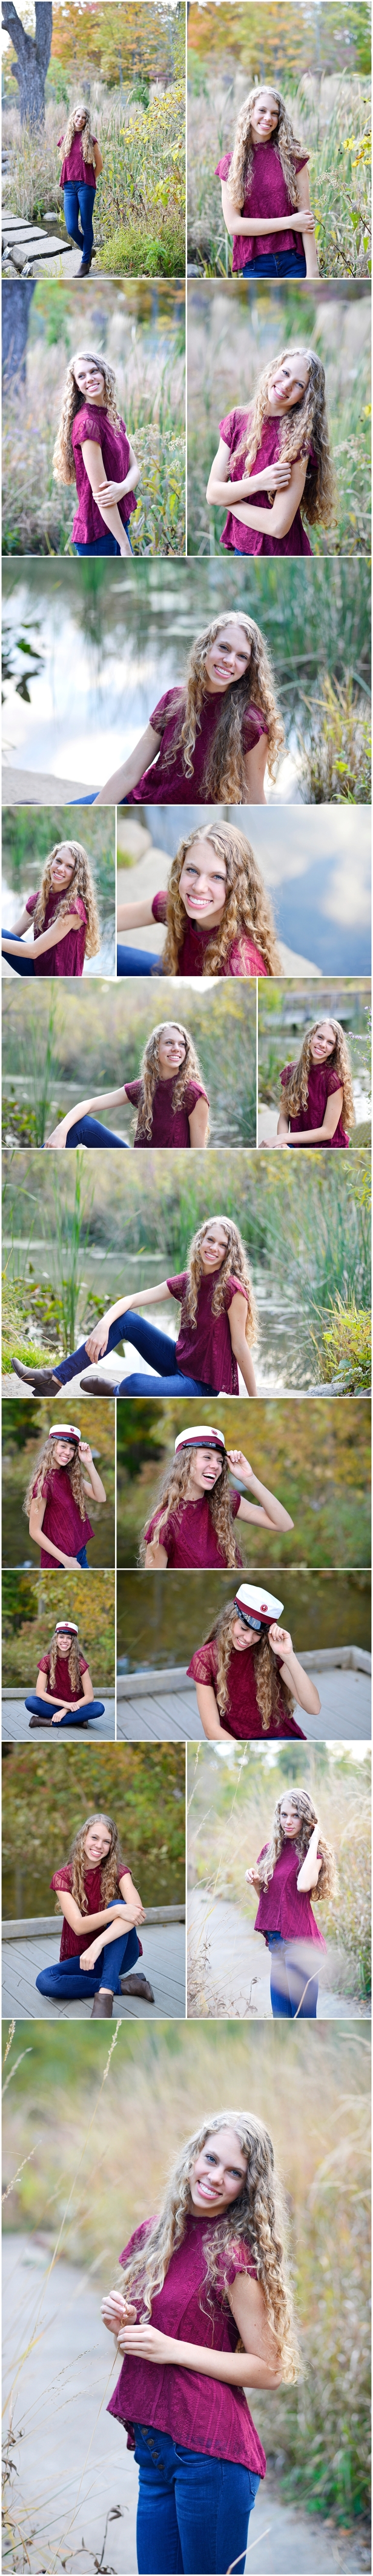 senior-girl-photos-columbus-ohio